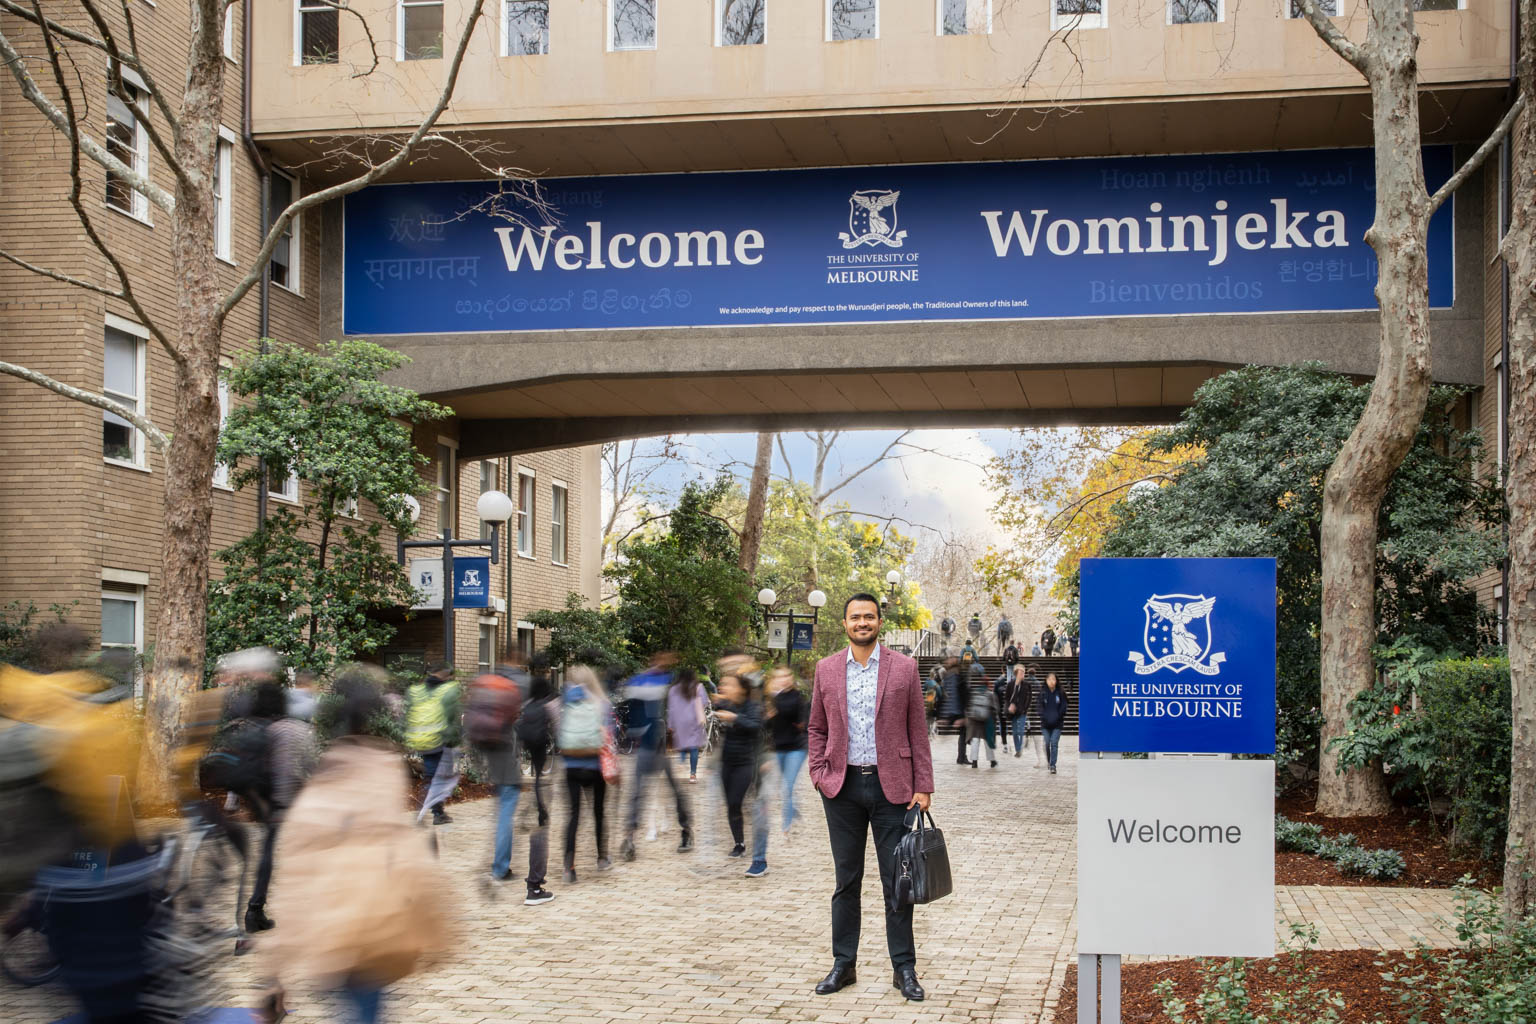 commercial photography of man standing under arch way at melbourne university entrance